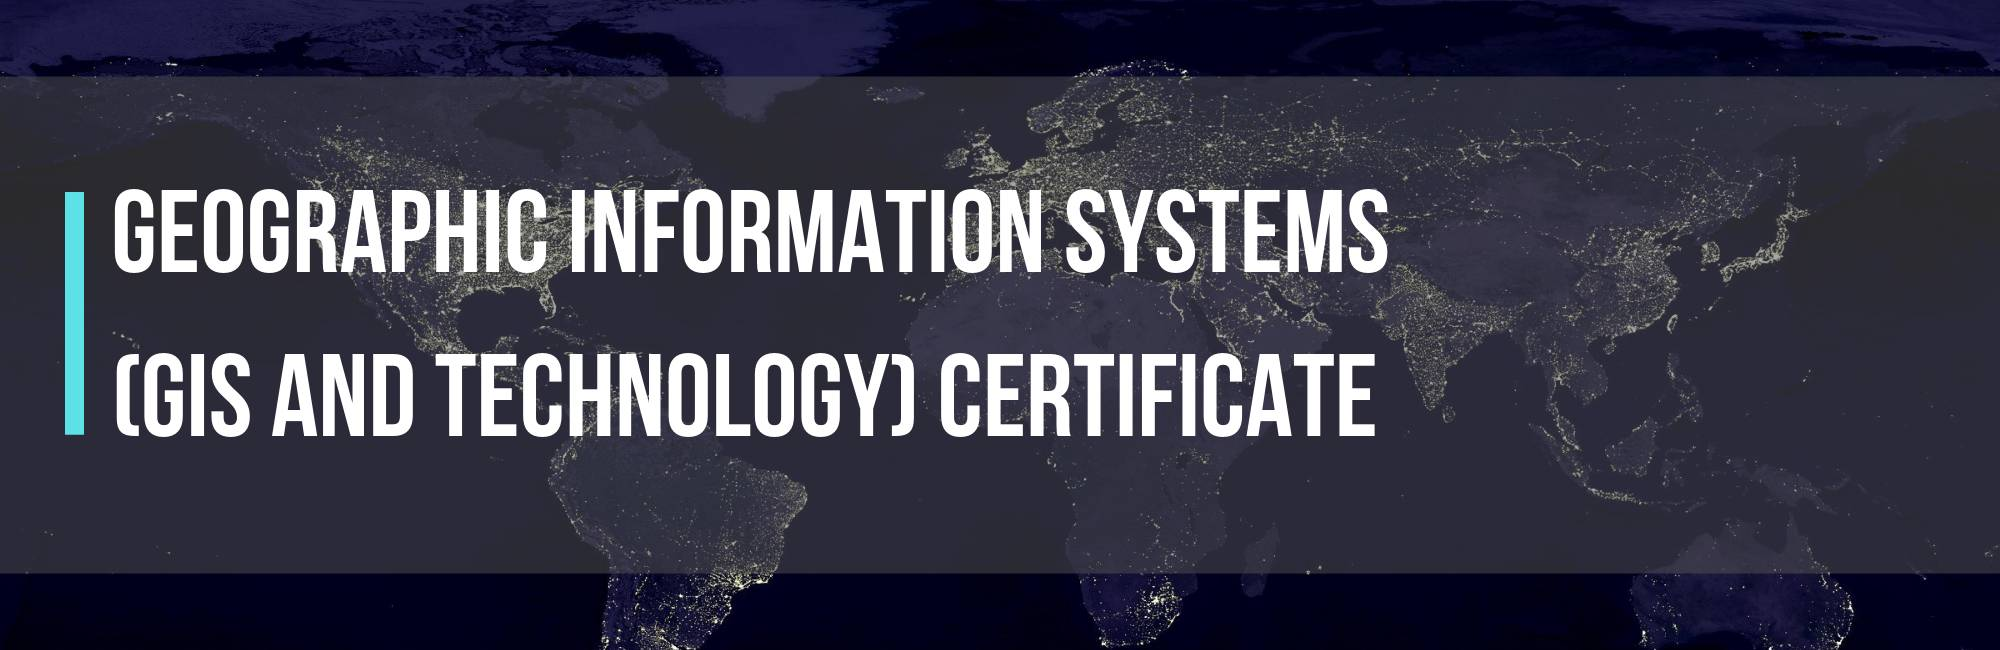 Geographic Information Systems (GIS and Technology) Certificate